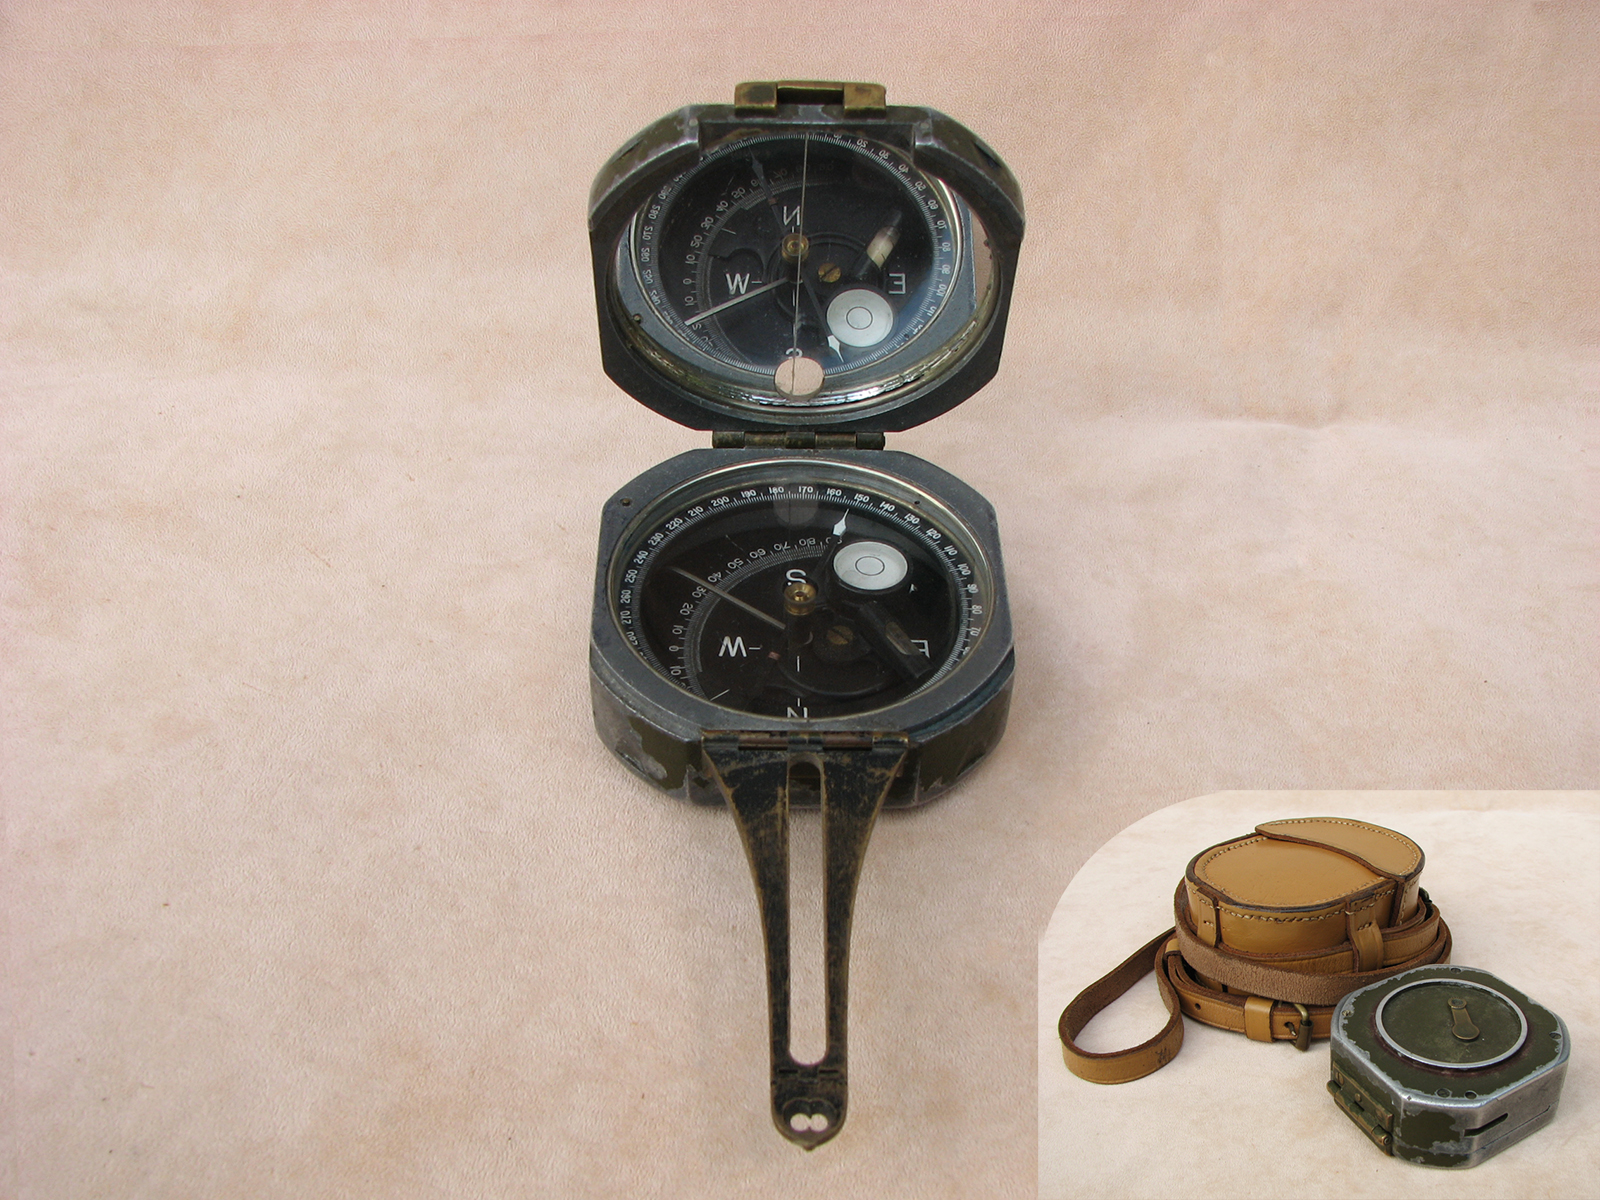 Rare Brunton M2 compass by William Ainsworth dated 1942